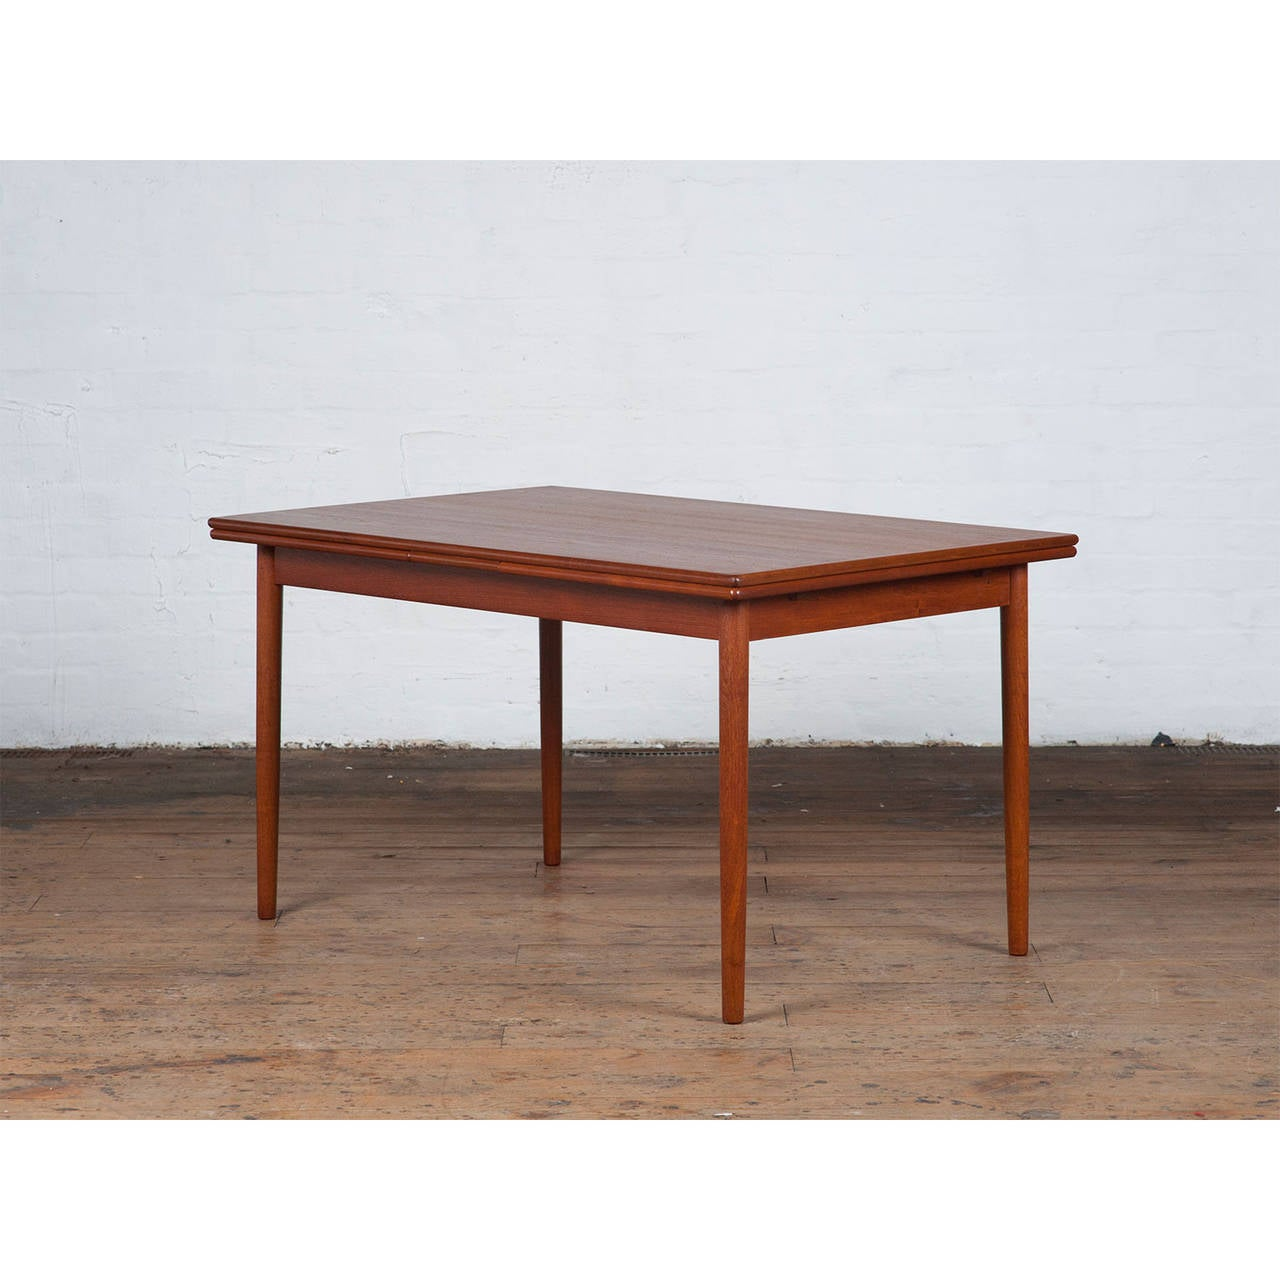 Mid Century Danish Teak Dining Table For Sale at 1stdibs : NewTeakDiningTablesideclosedl from www.1stdibs.com size 1280 x 1280 jpeg 114kB